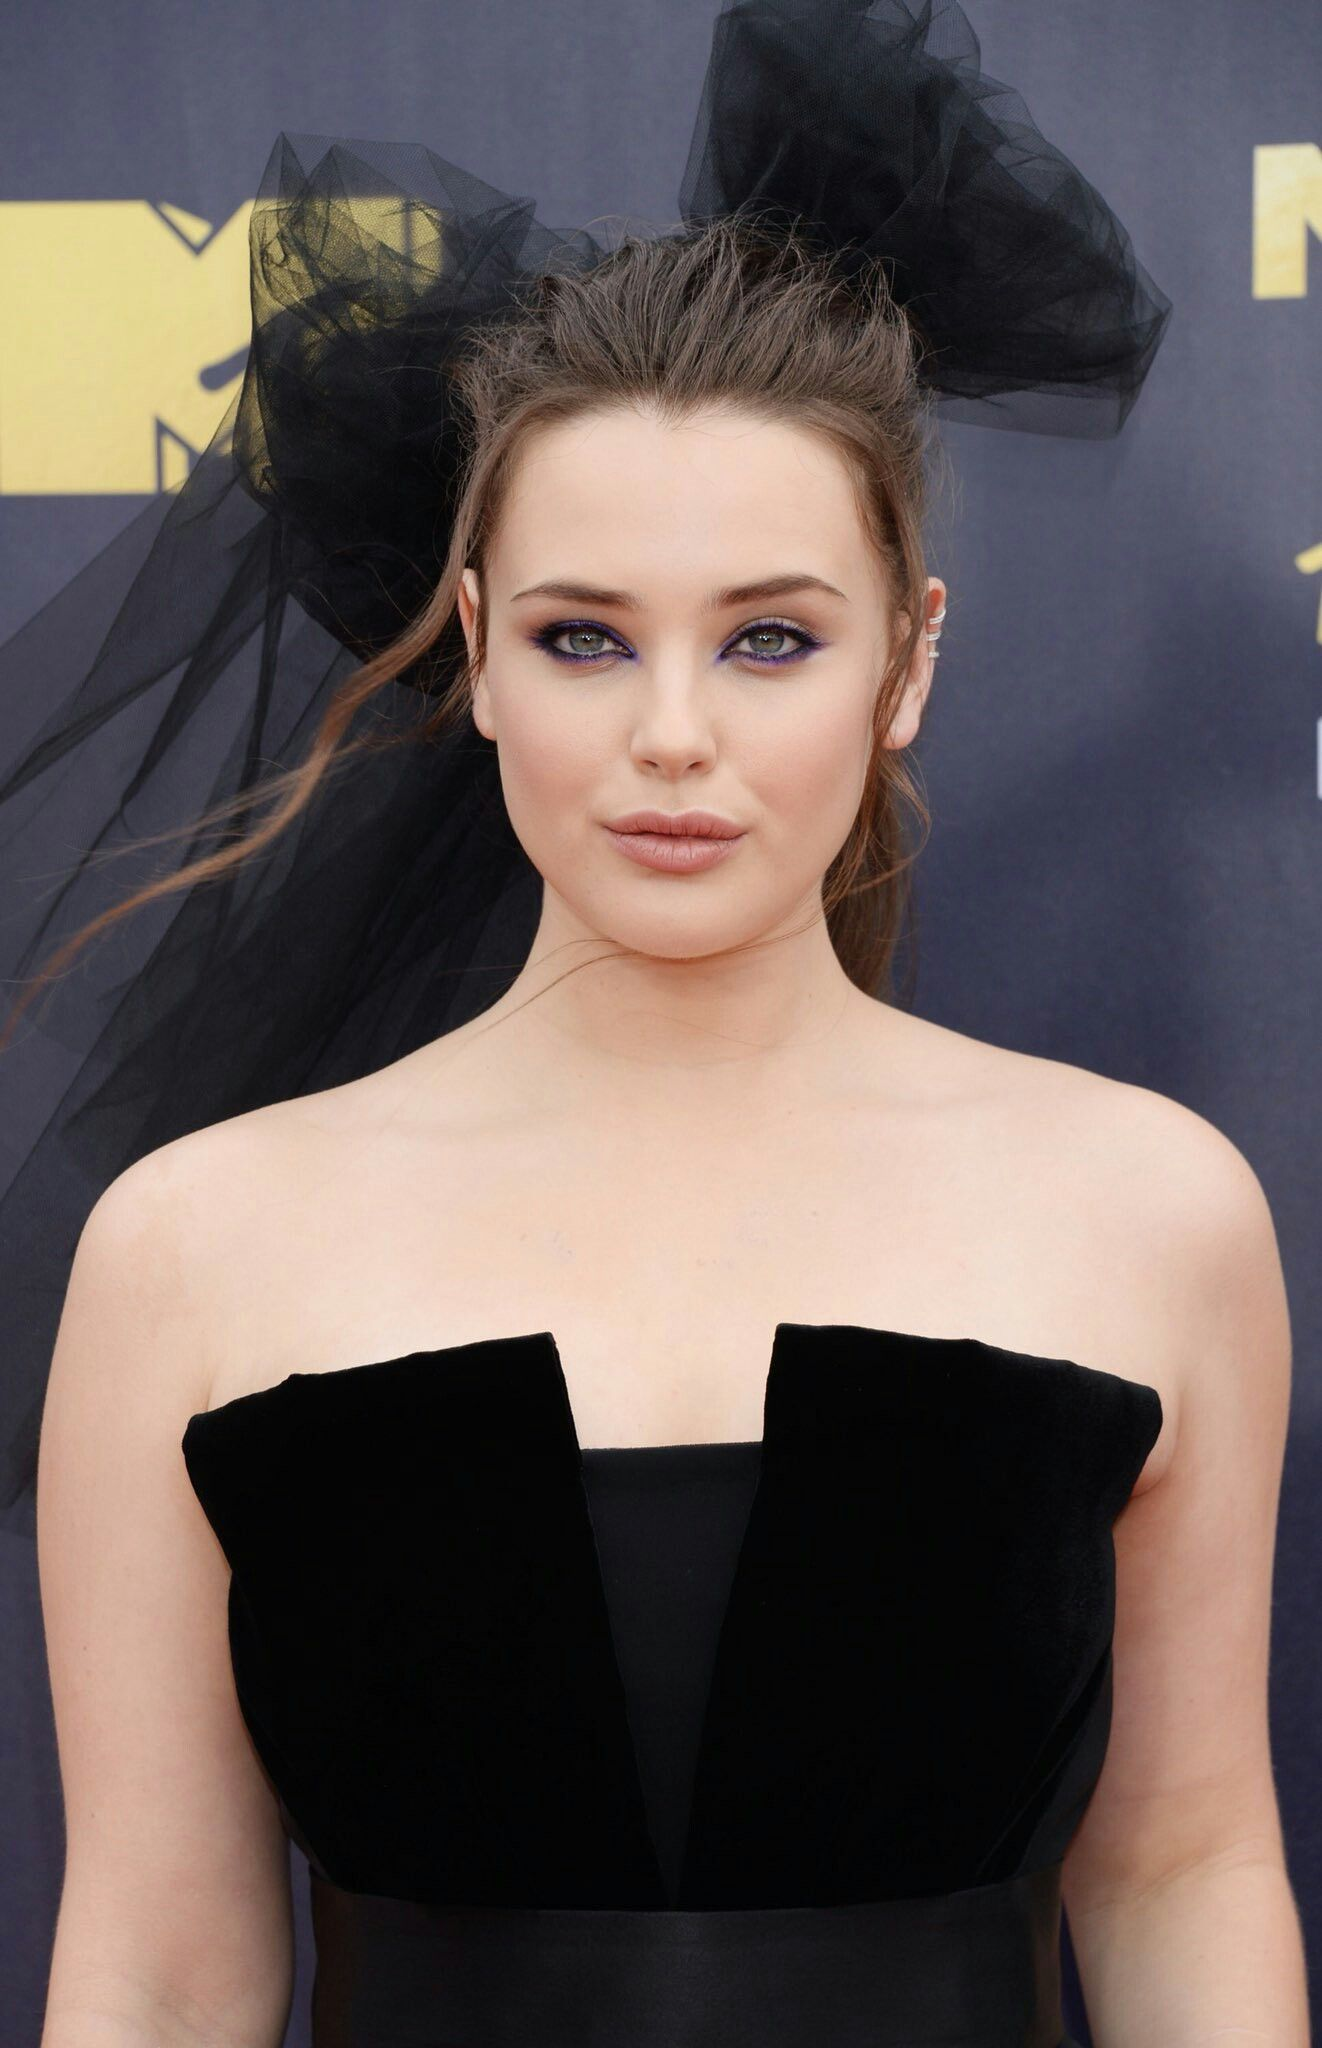 49 Hottest Katherine Langford Bikini Pictures Are Just Too